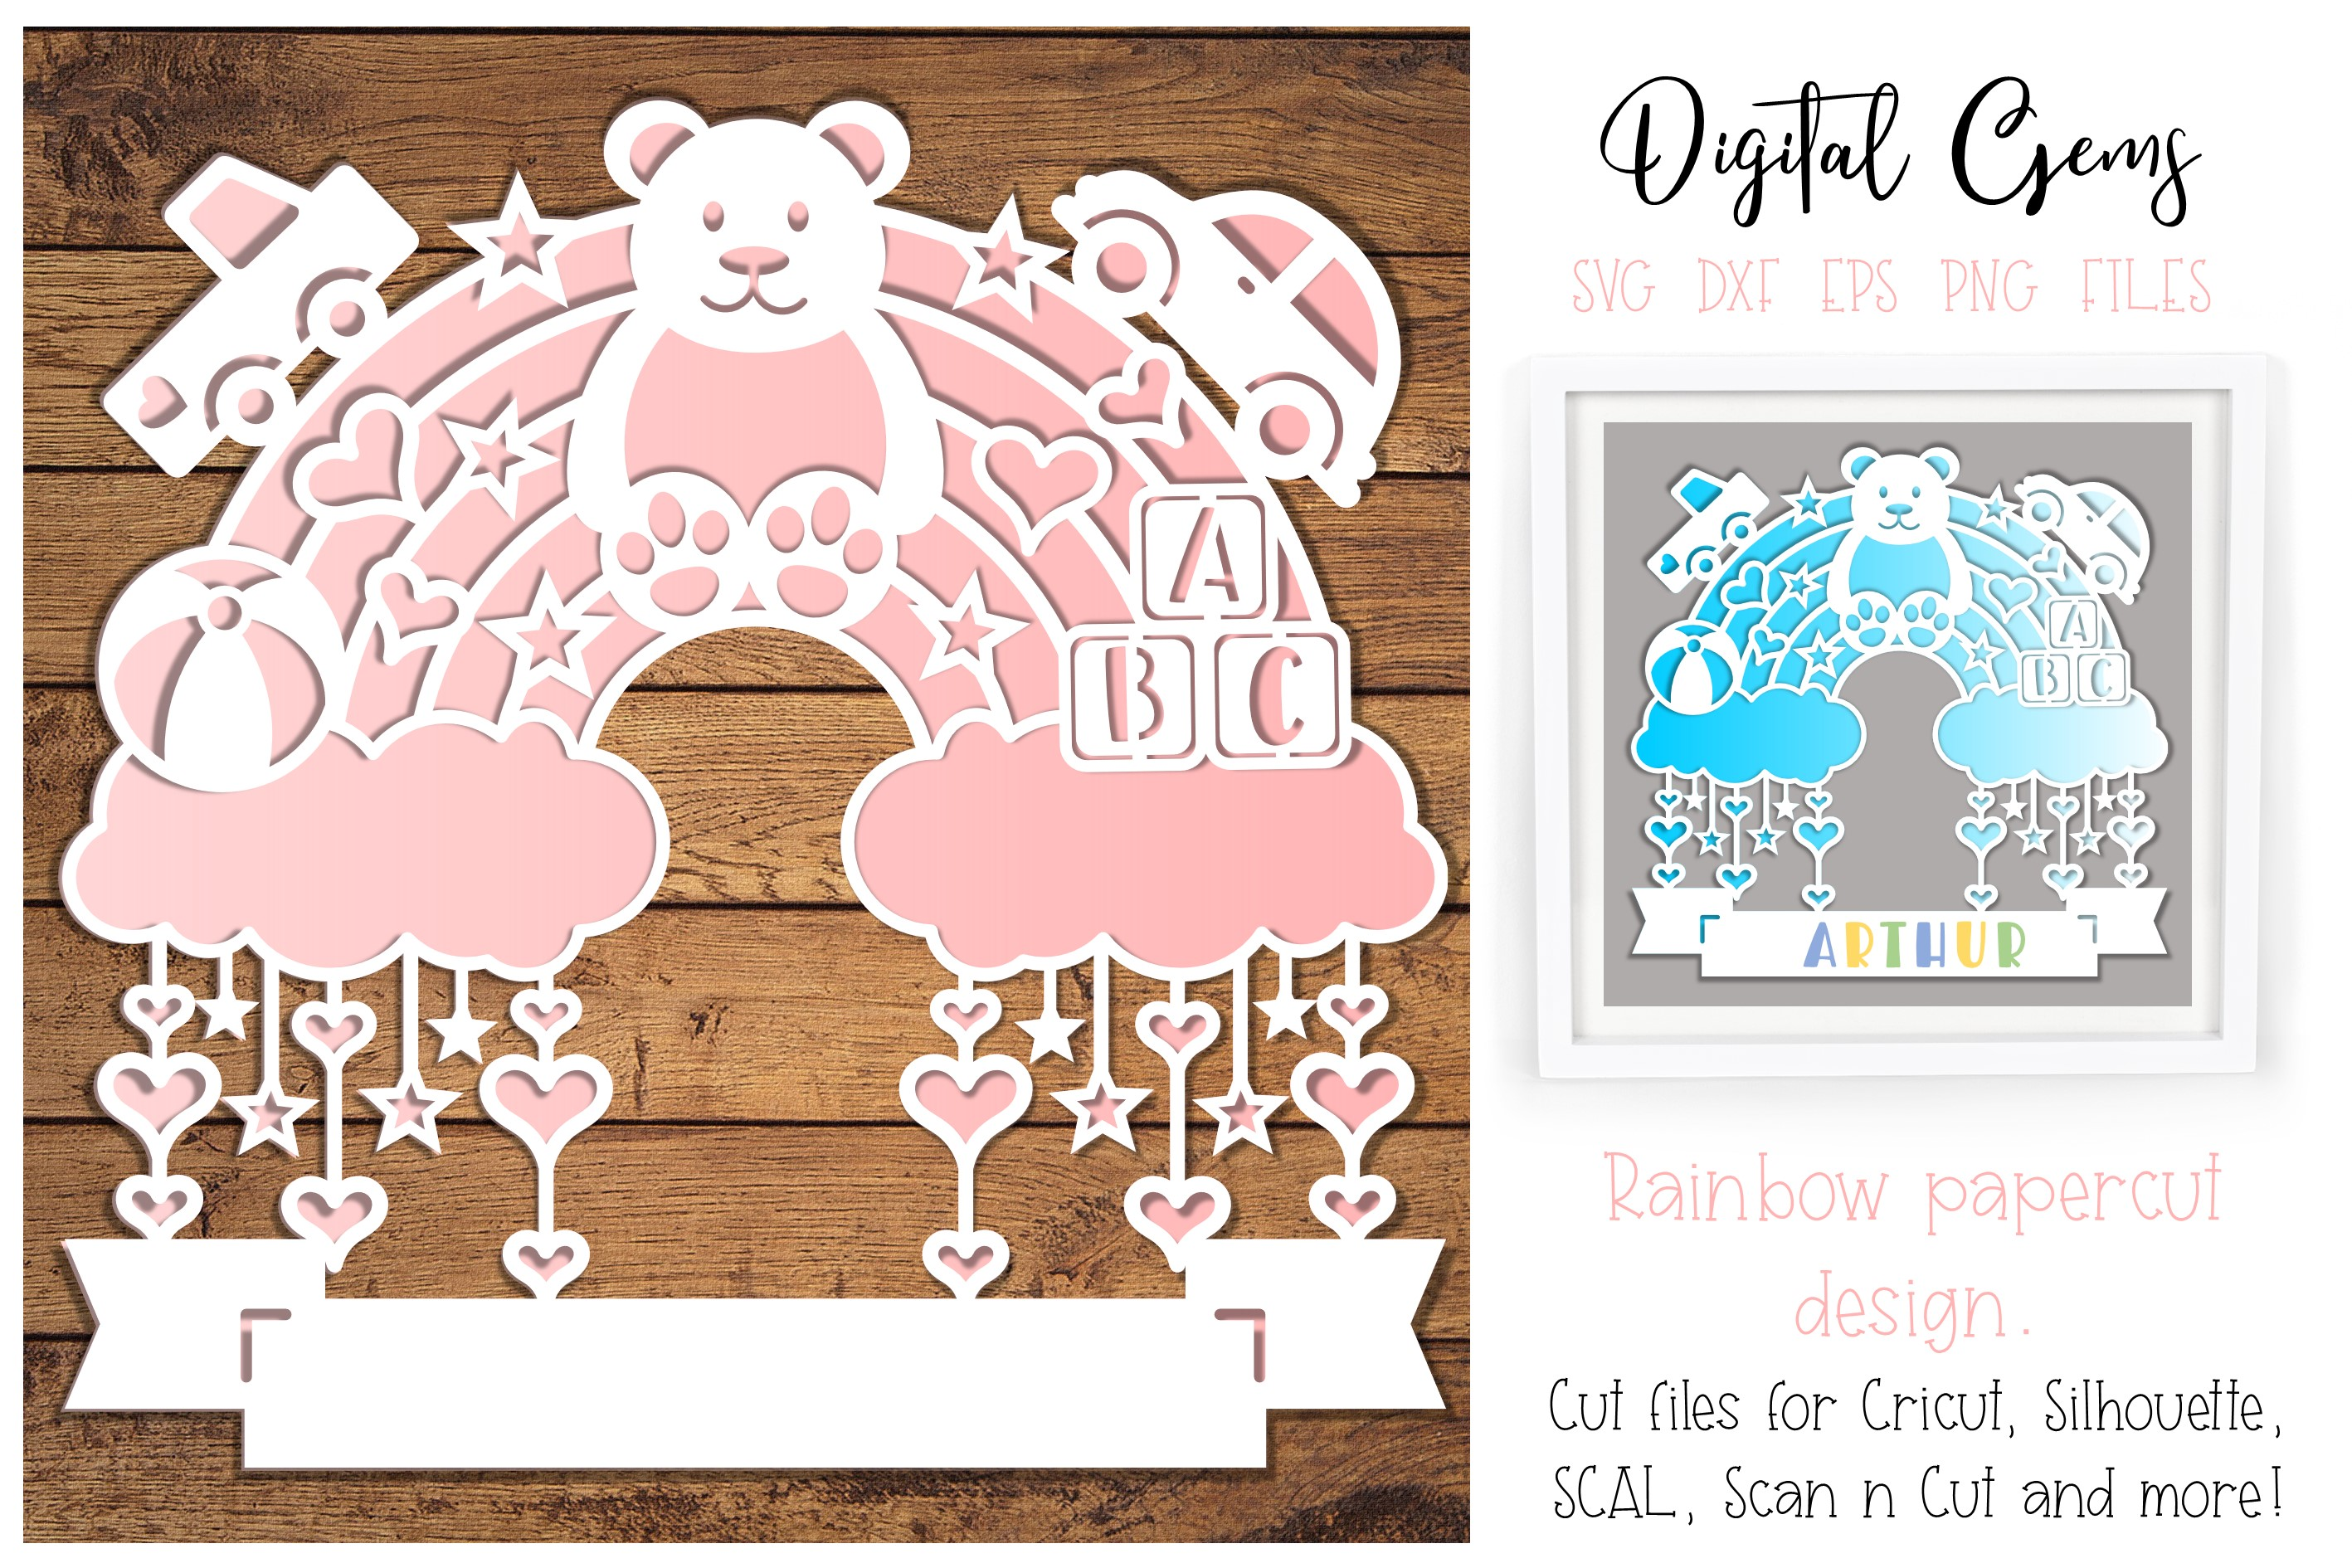 Download Free Rainbow Paper Cut Design Graphic By Digital Gems Creative Fabrica for Cricut Explore, Silhouette and other cutting machines.